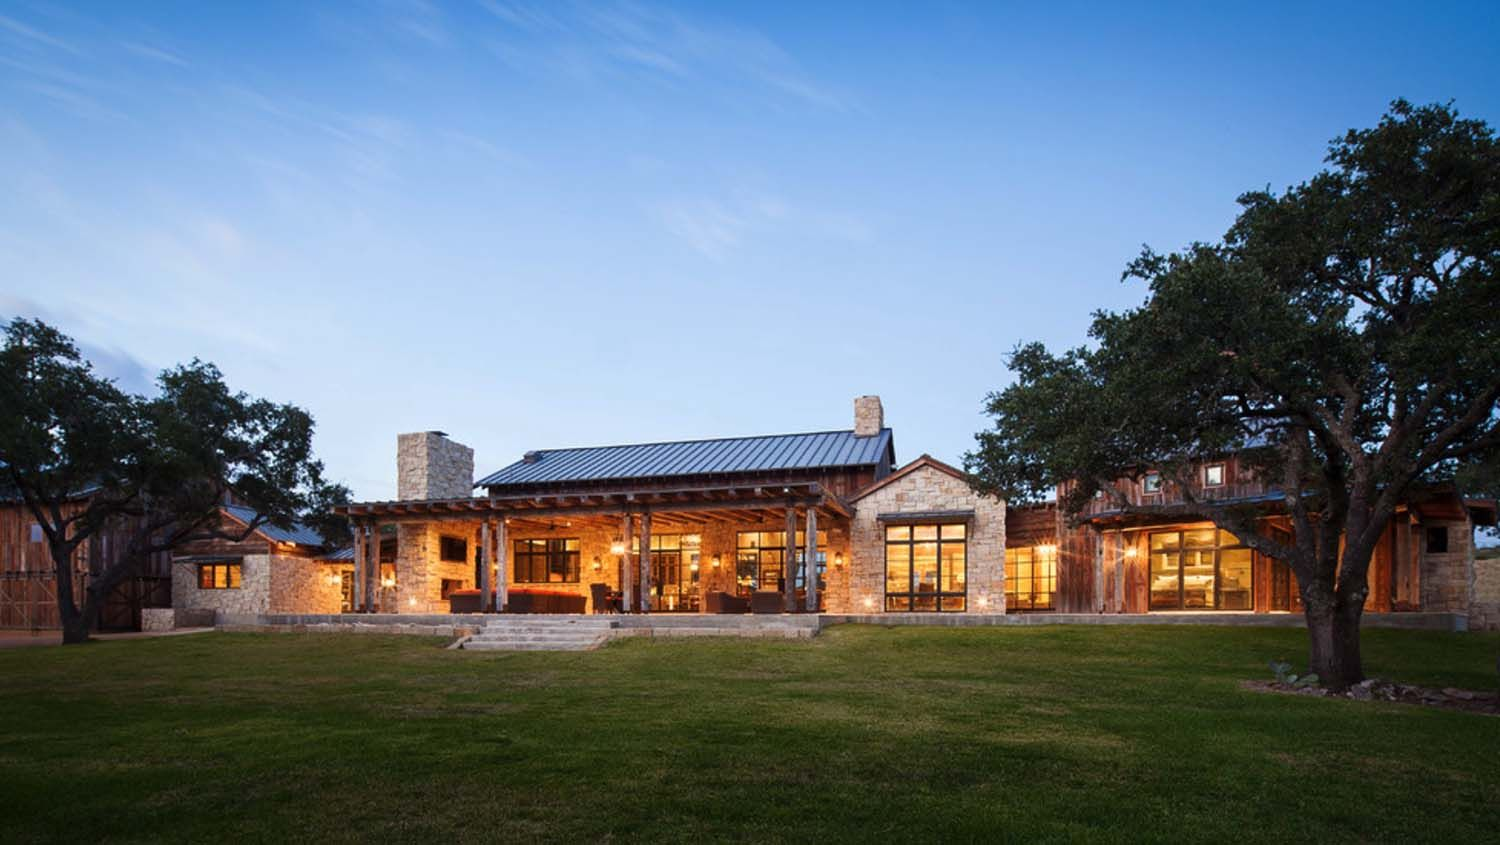 Modern rustic barn style retreat in texas hill country for Texas hill country home plans